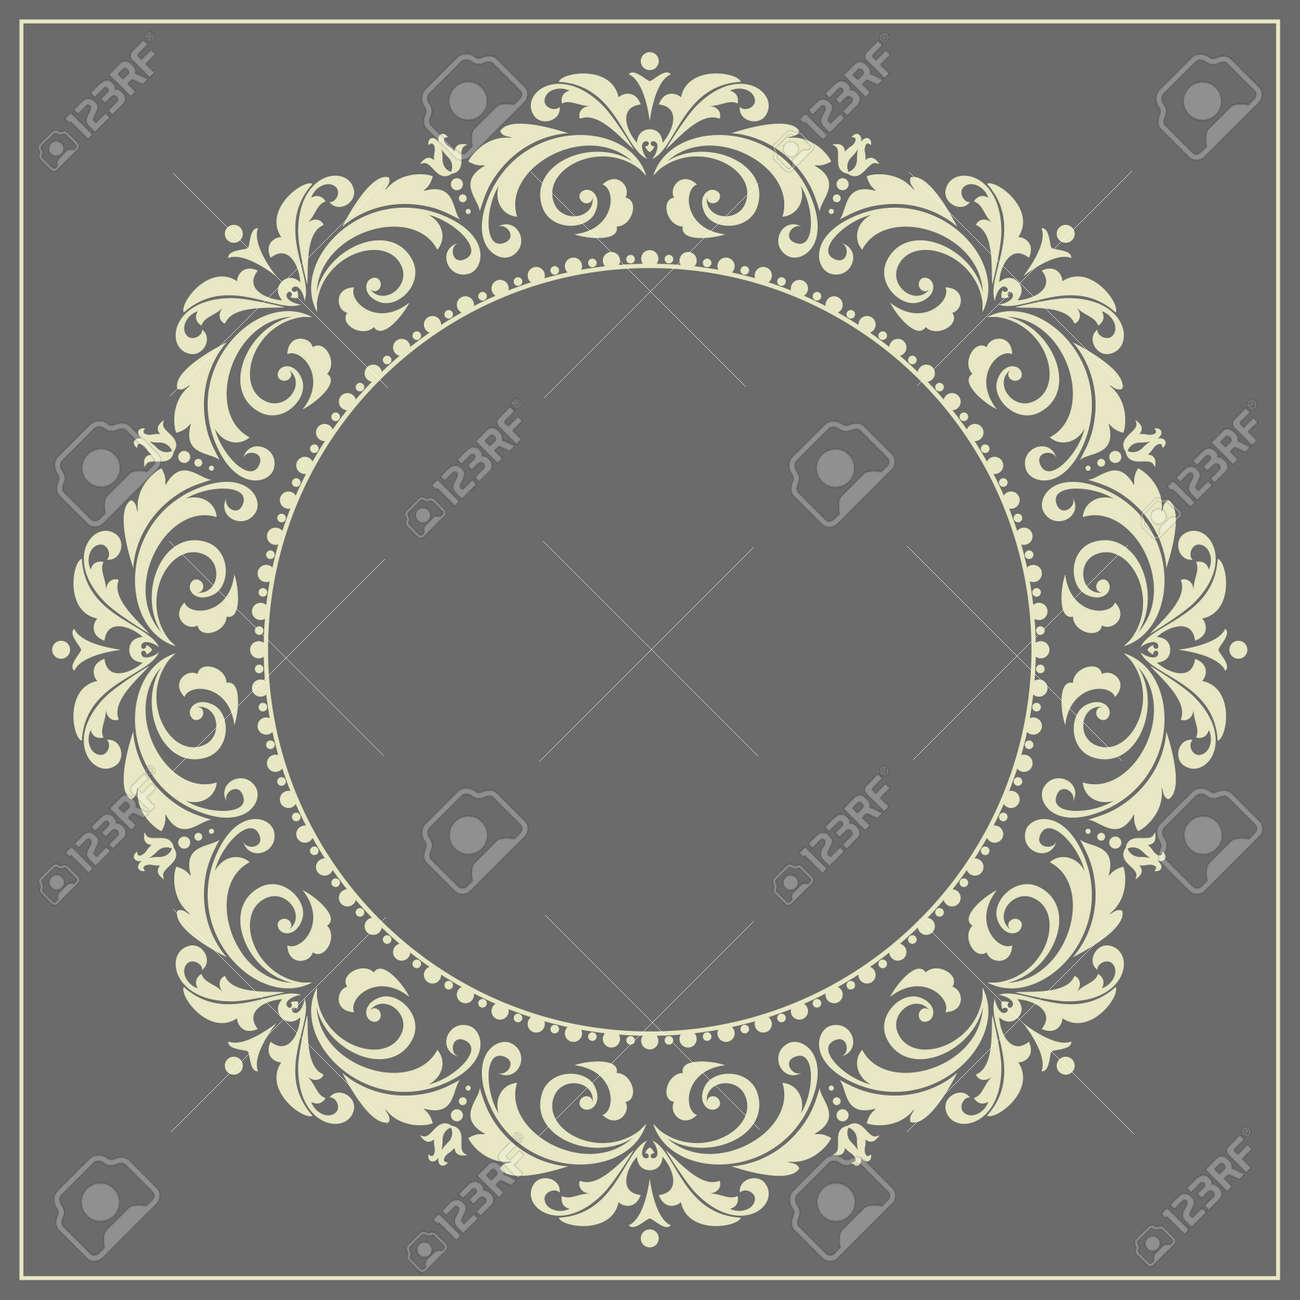 Decorative frame Elegant vector element for design in Eastern style, place for text. Floral golden and black border. Lace illustration for invitations and greeting cards - 169842970